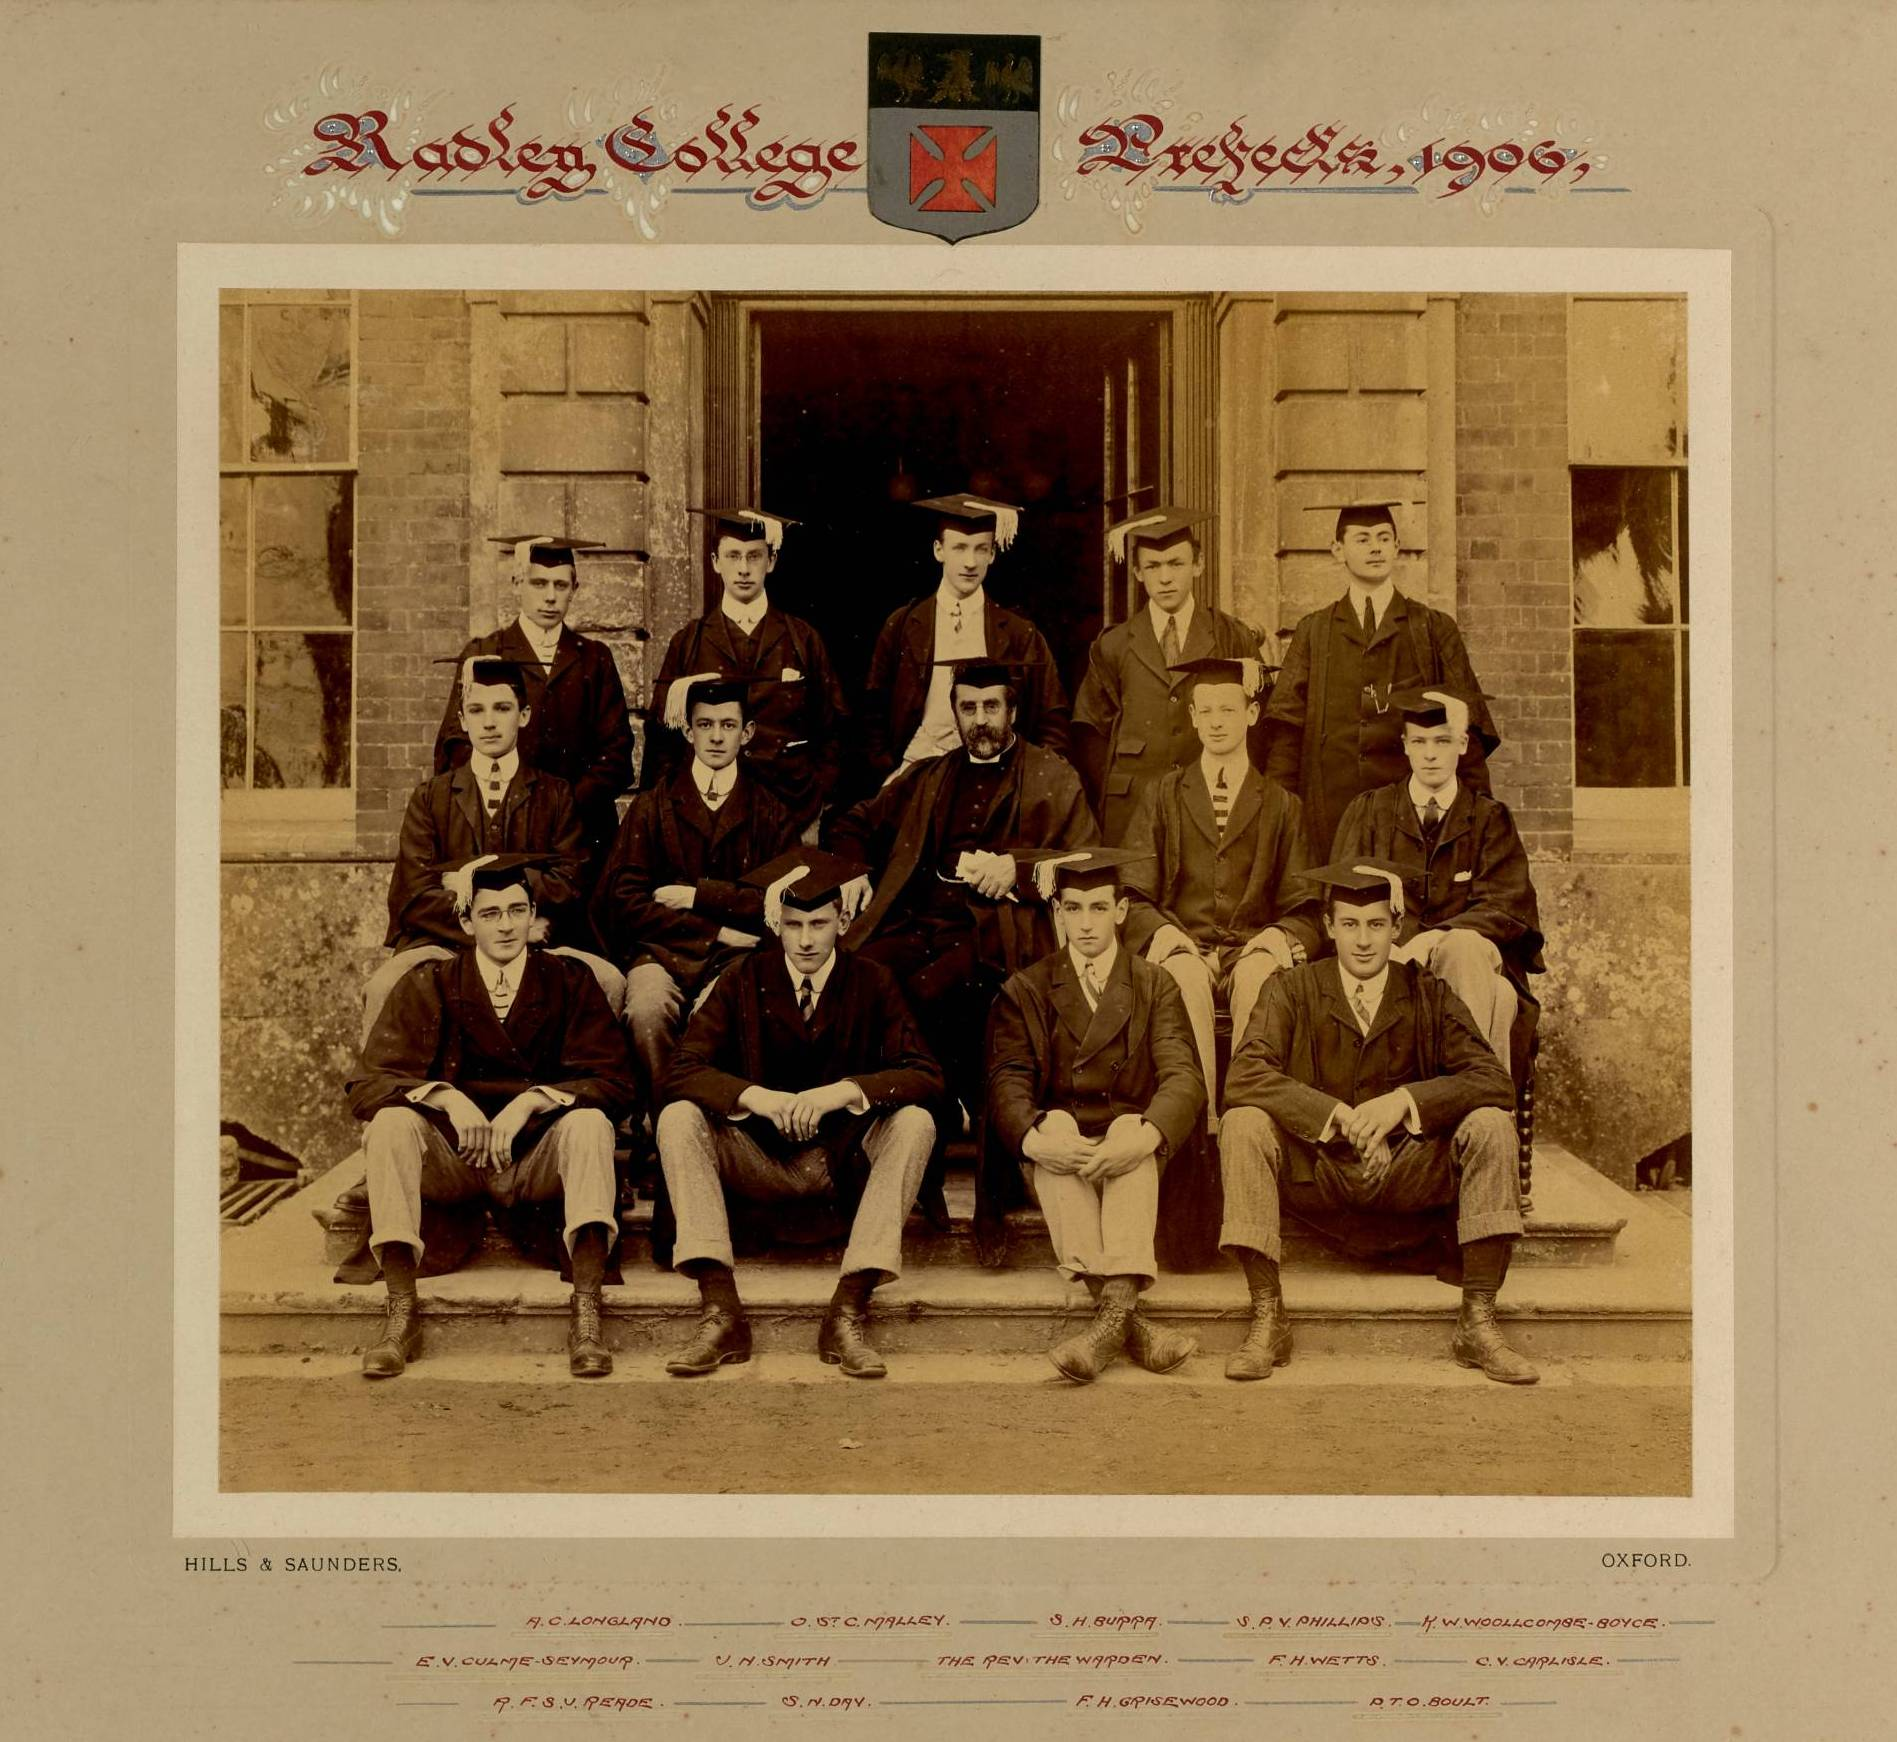 Radley College prefects photographs 1906